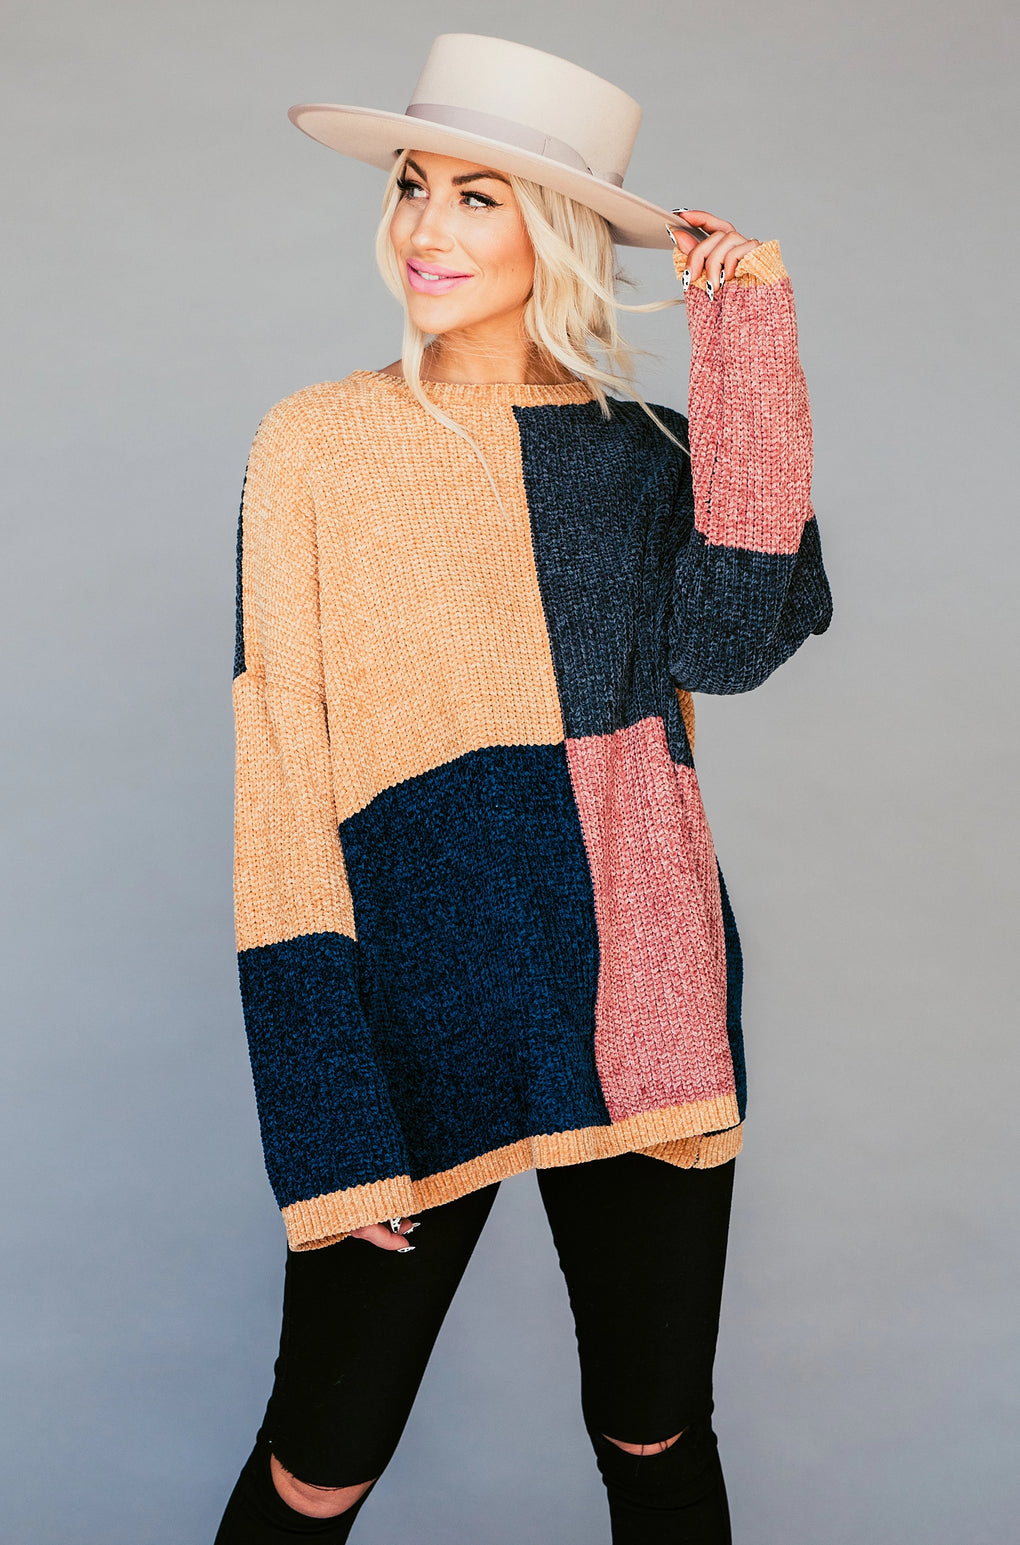 Honey Honey Colorblock Knit in Navy